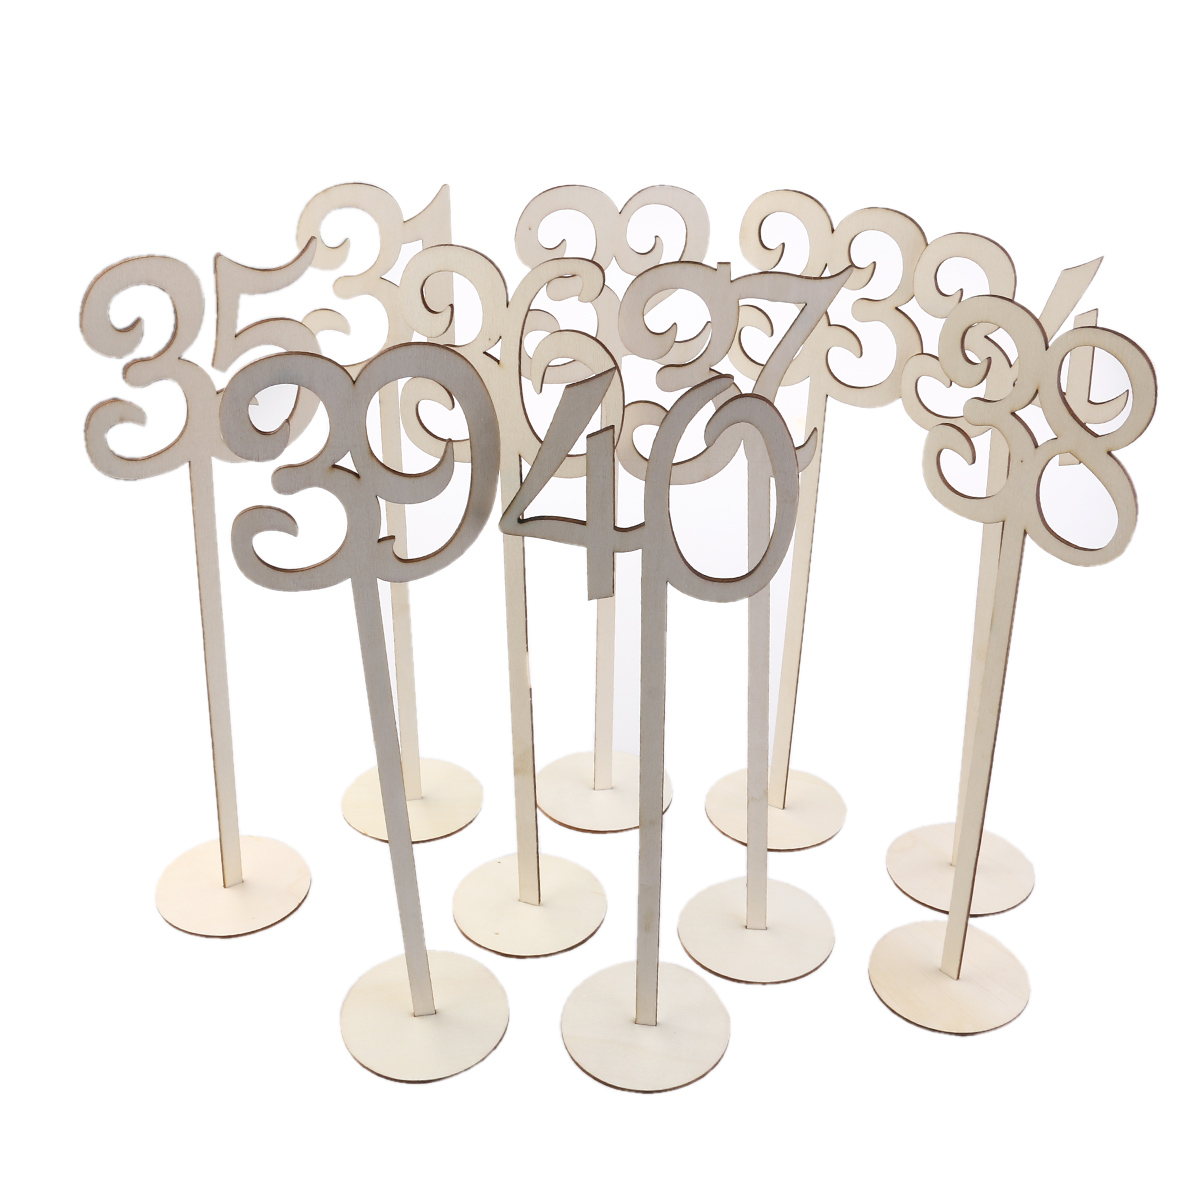 10pcs numbers 31 40 rustic wedding table decoration wooden wedding table number holder party table